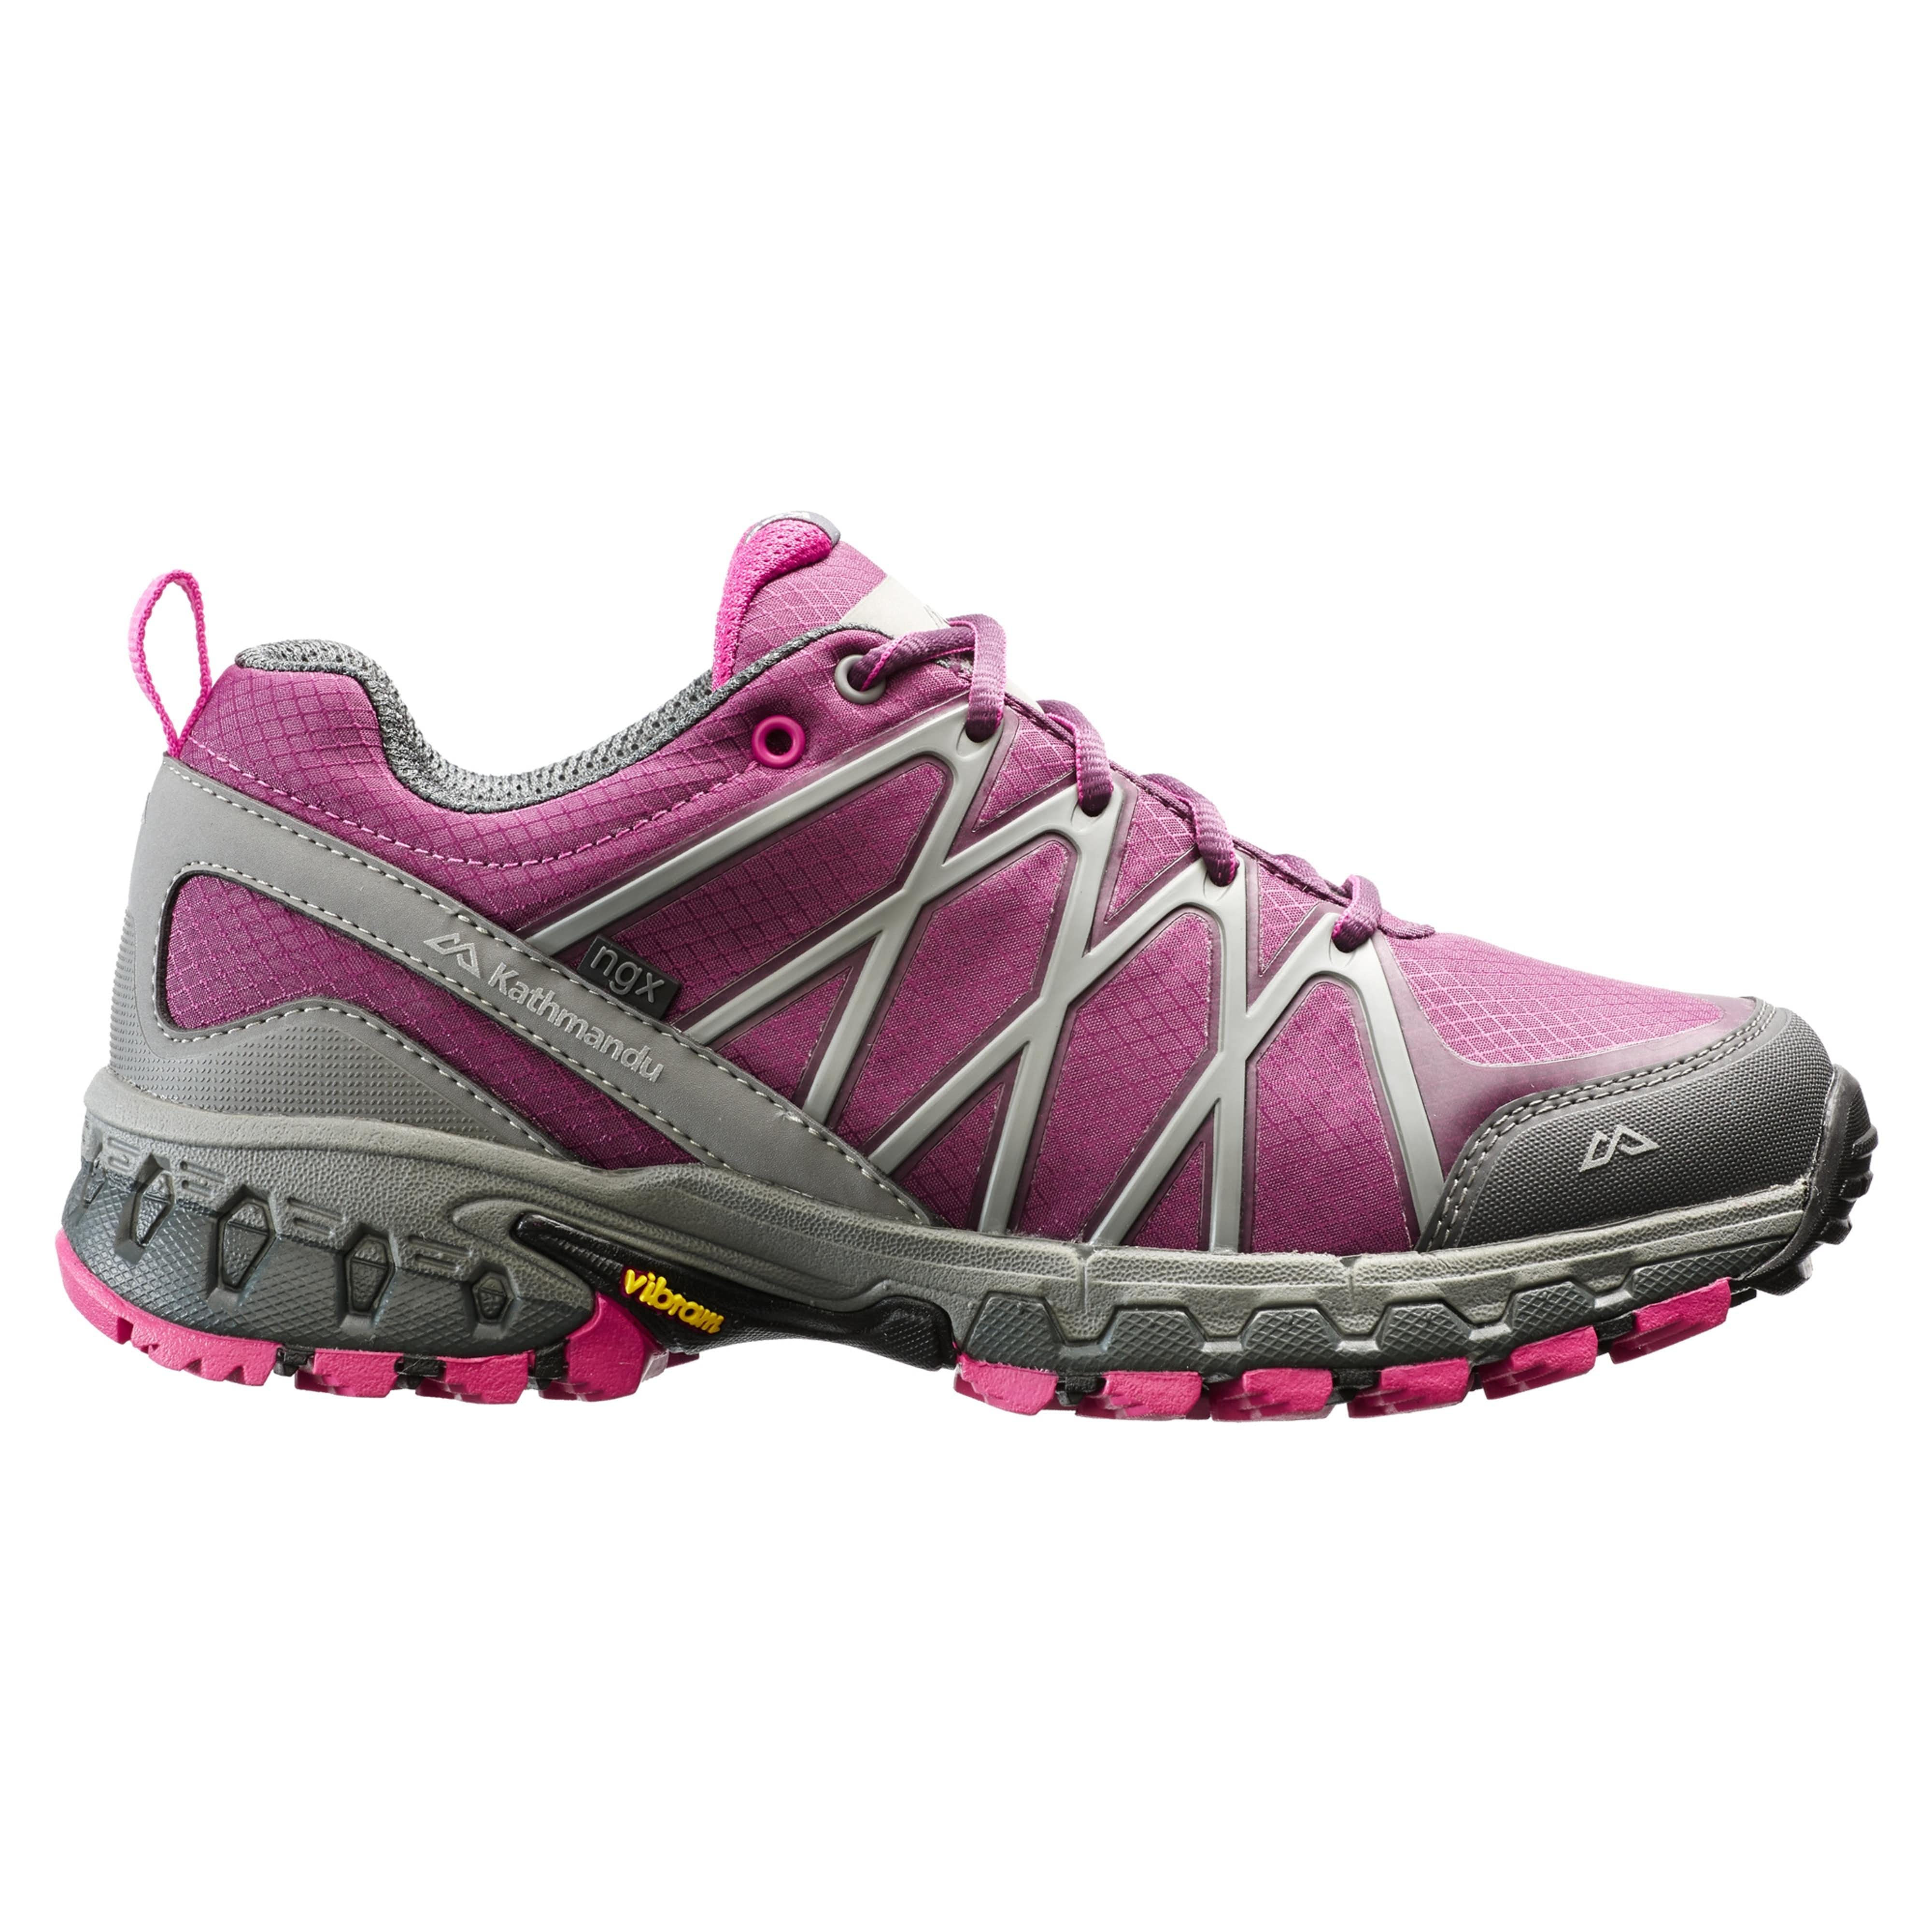 48ca638c0441 Fletcher II ngx Women s Trail Shoes